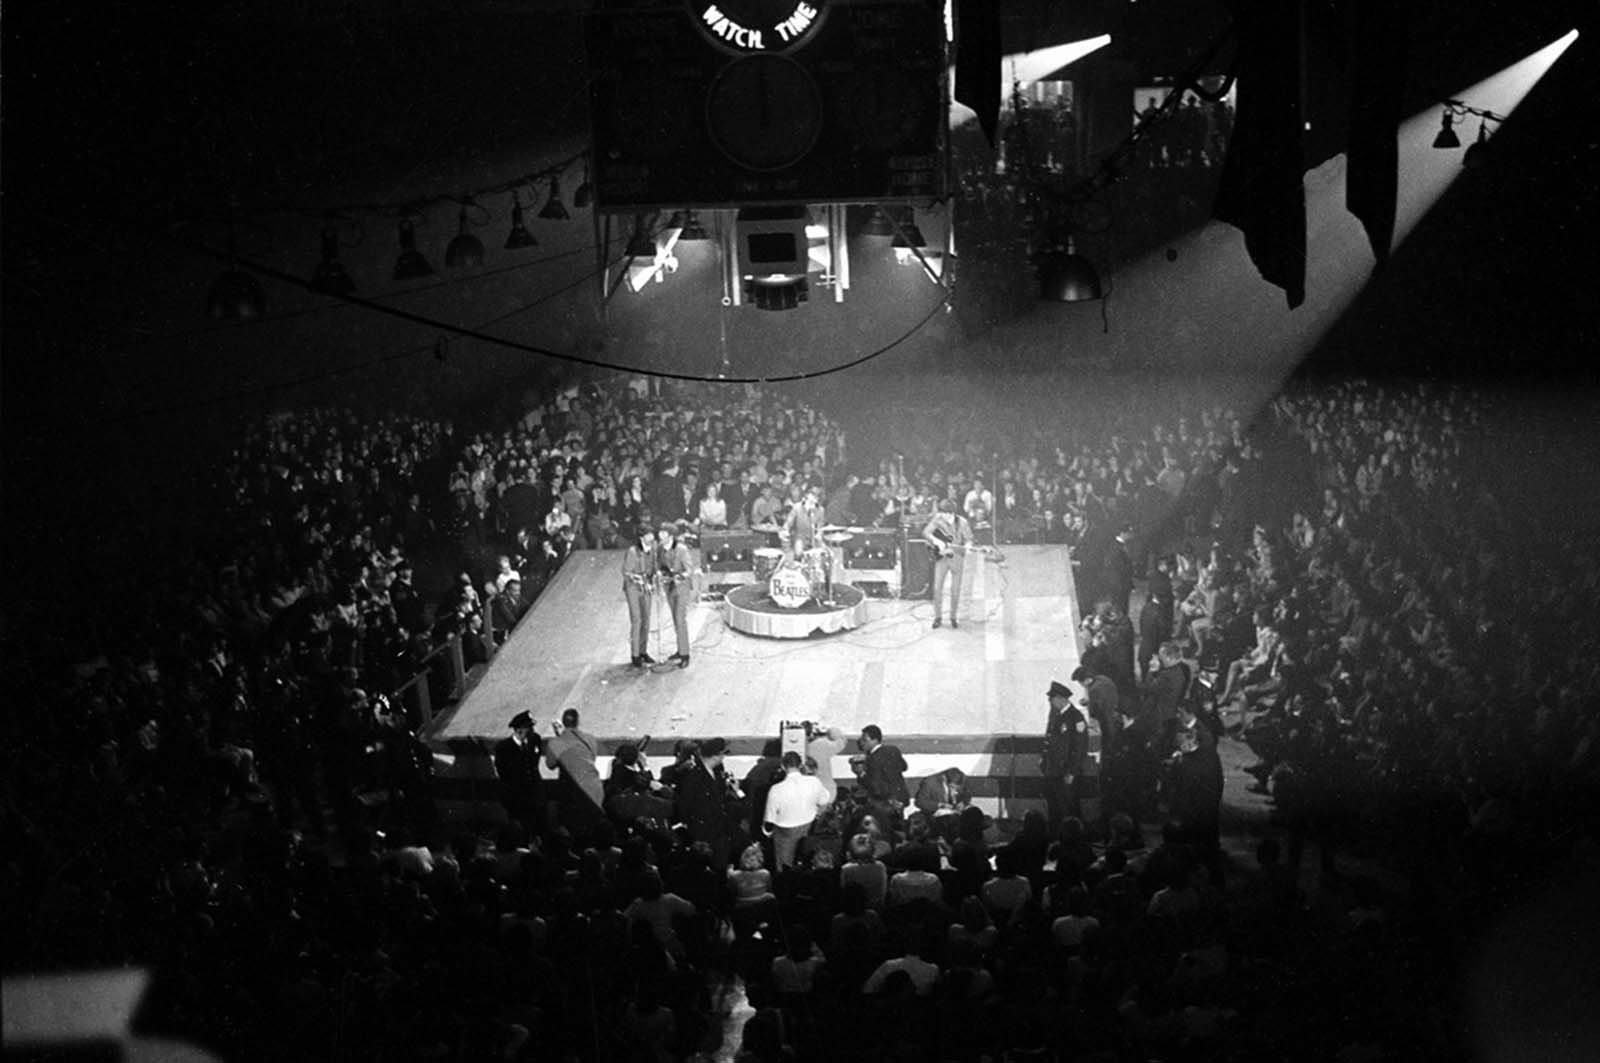 The Beatles perform at the Coliseum in Washington, District of Columbia, during their first American tour.